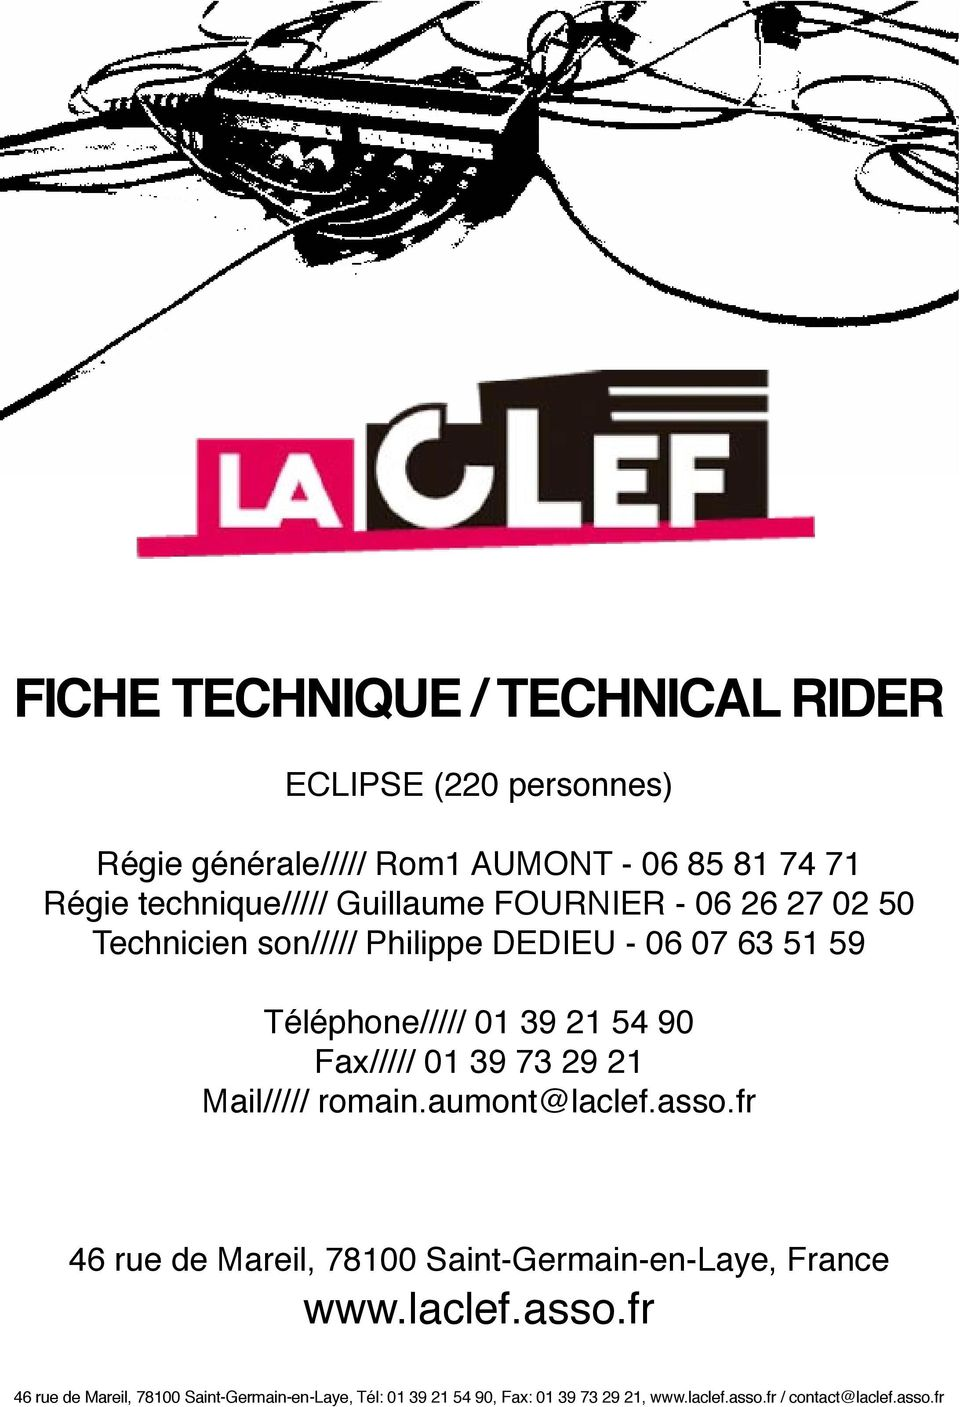 01 39 73 29 21 Mail///// romain.aumont@laclef.asso.